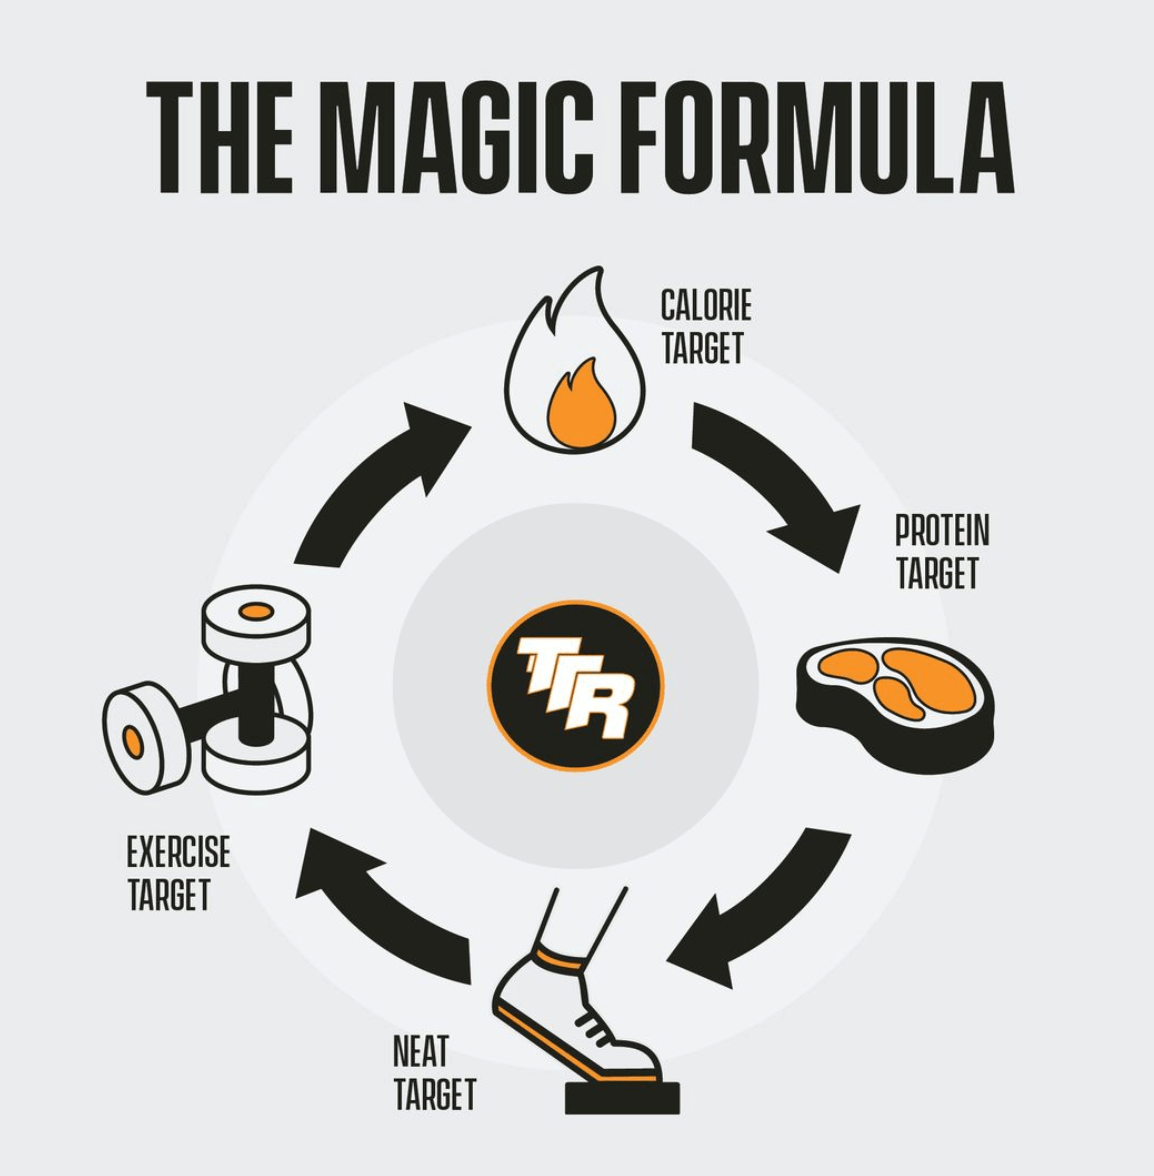 Magic Diet Formula for Working Out